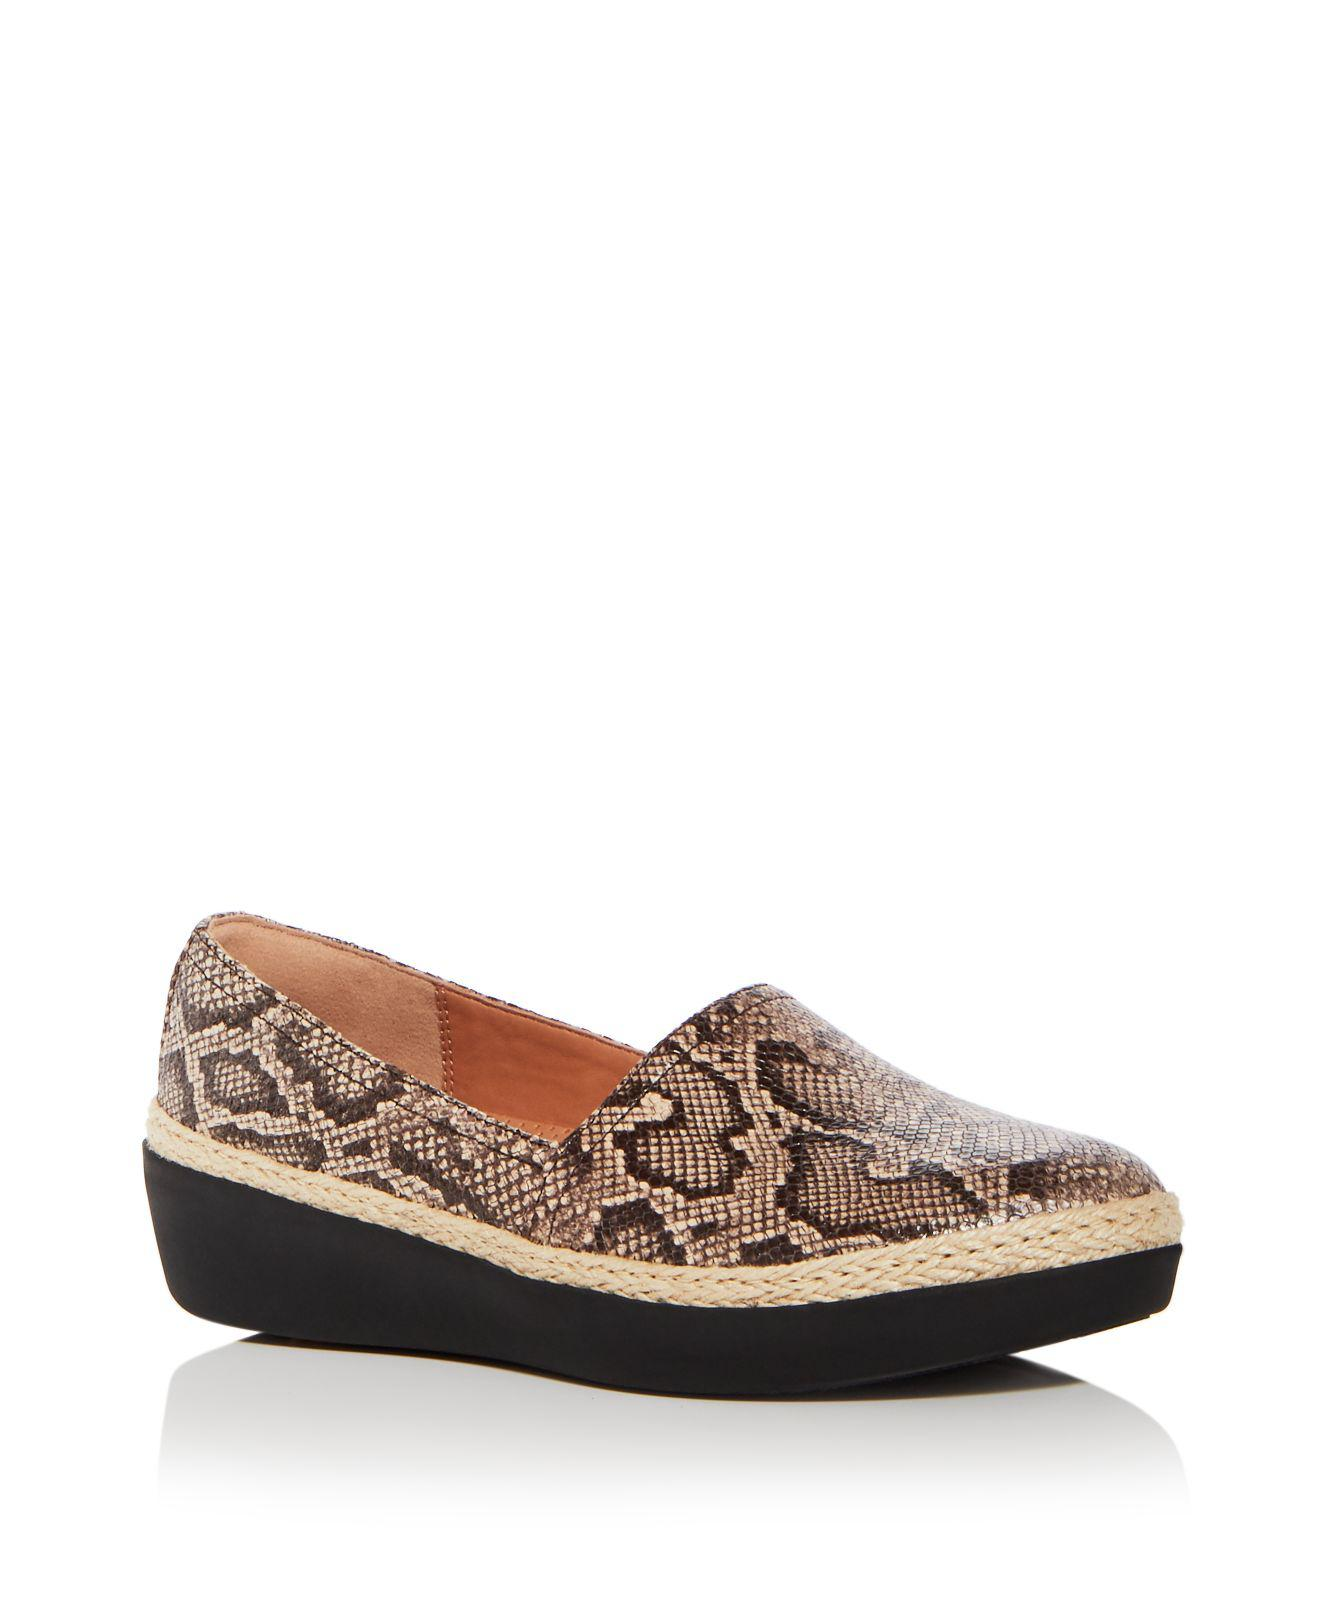 FitFlop Women's Casa Snake Embossed Leather Wedge Platform Loafers oBUxht2